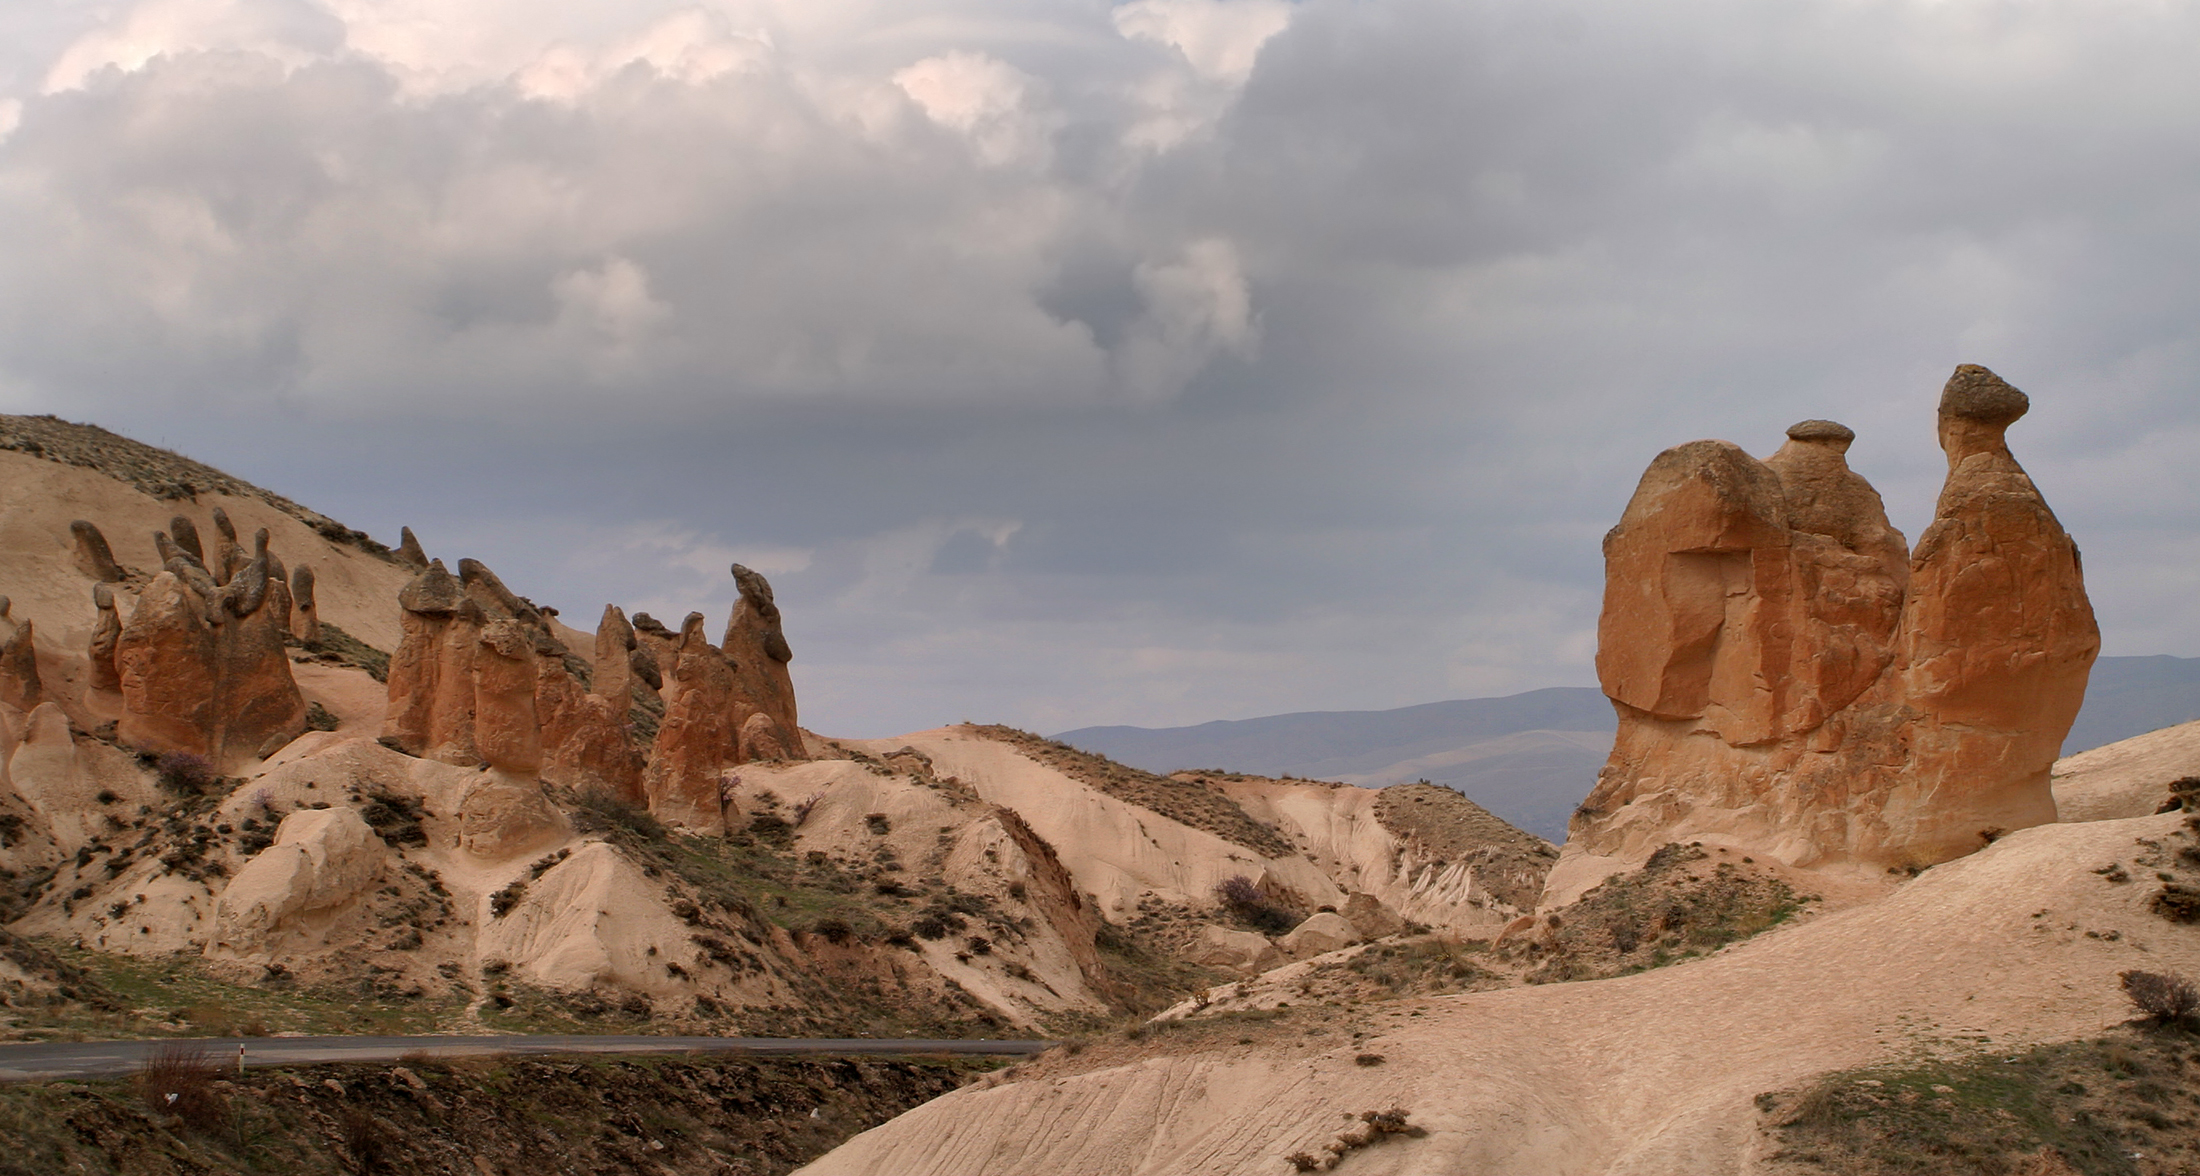 File:Camel rock in Cappadocia.jpg - Wikimedia Commons